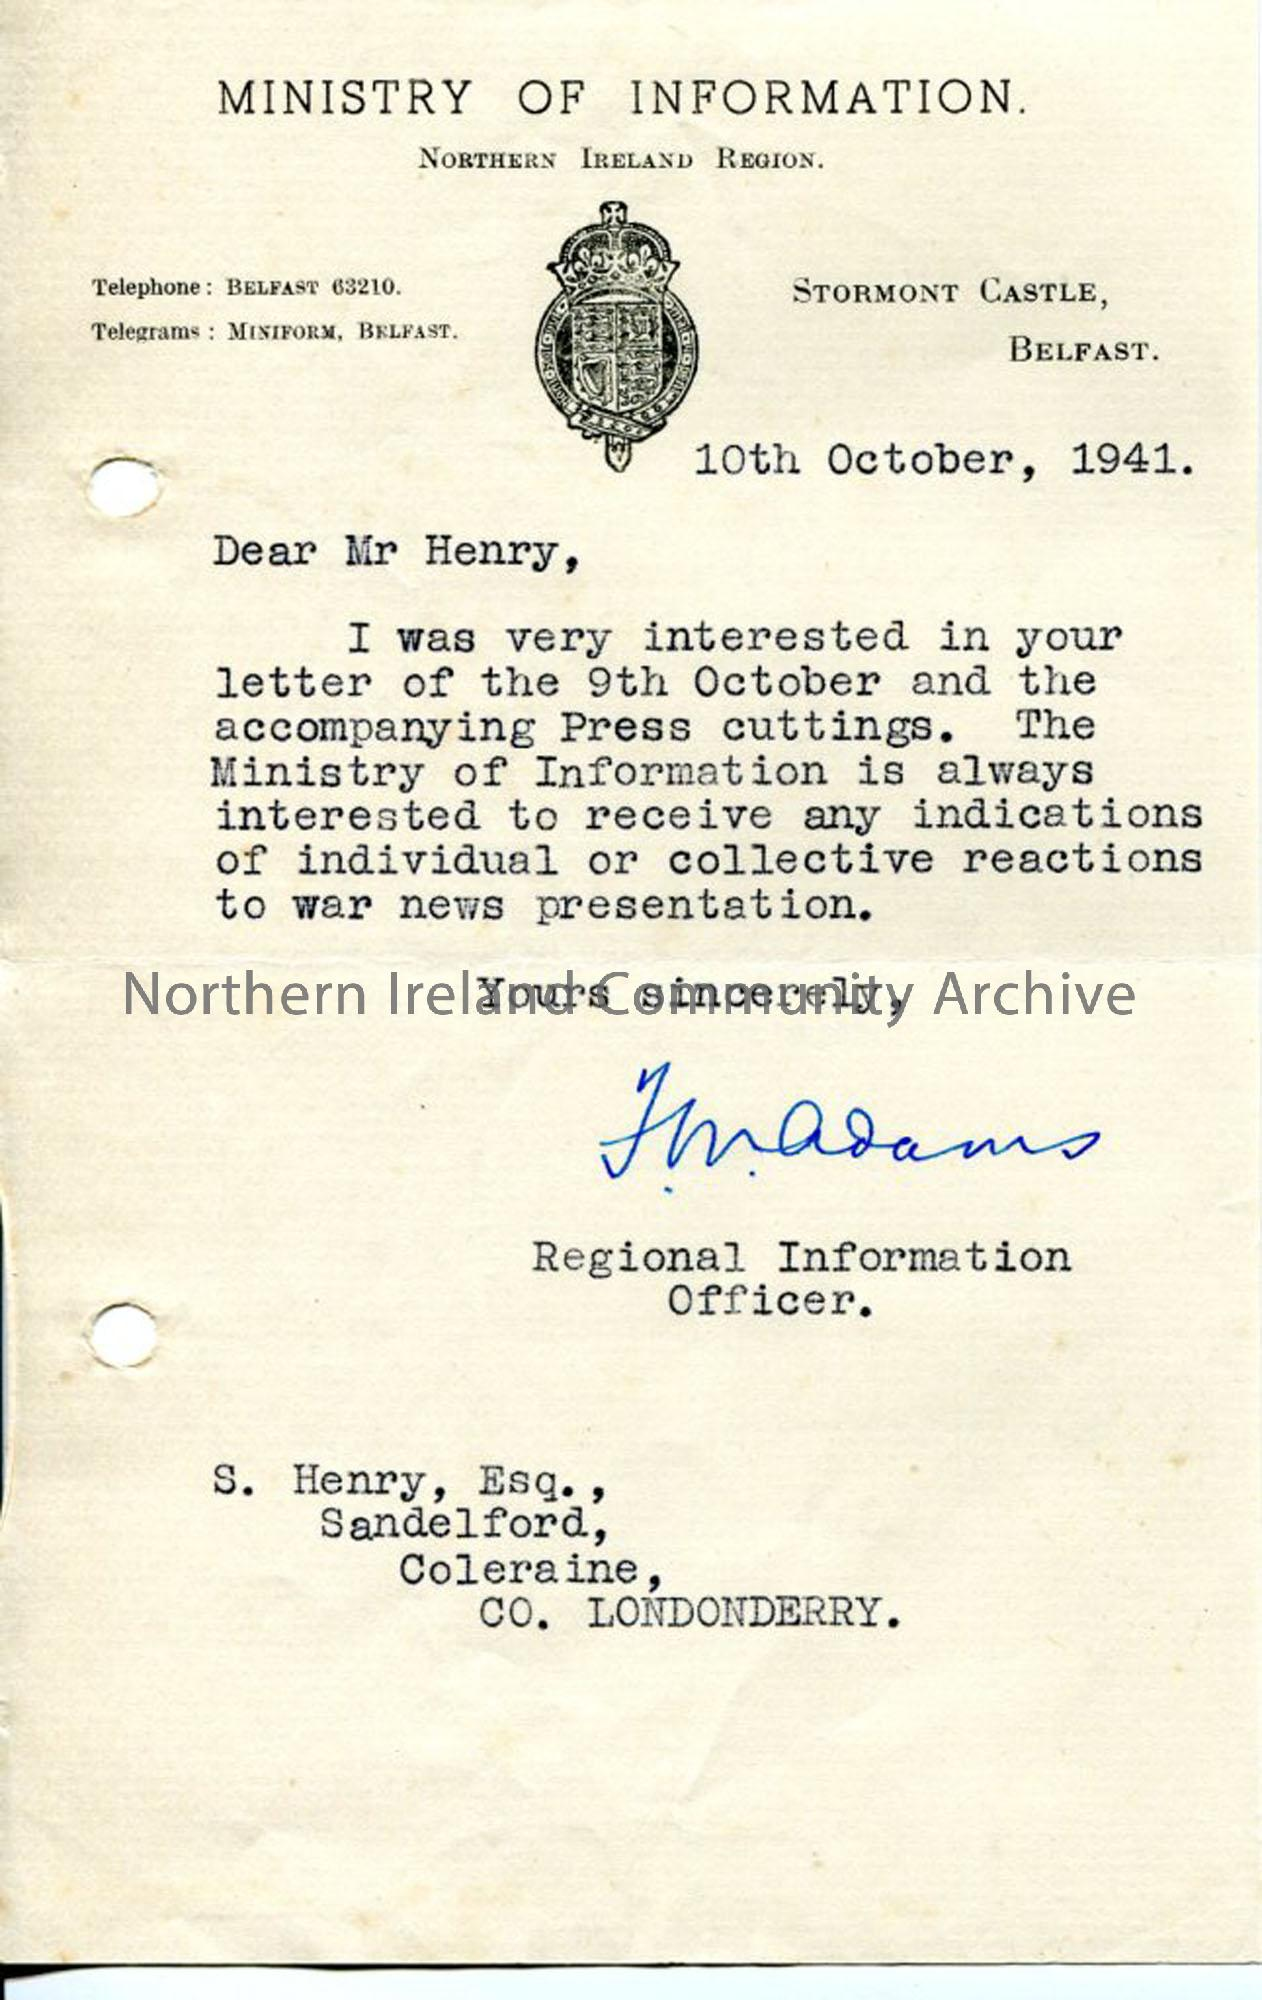 Letter from Ministry of Information to Sam Henry (3267)